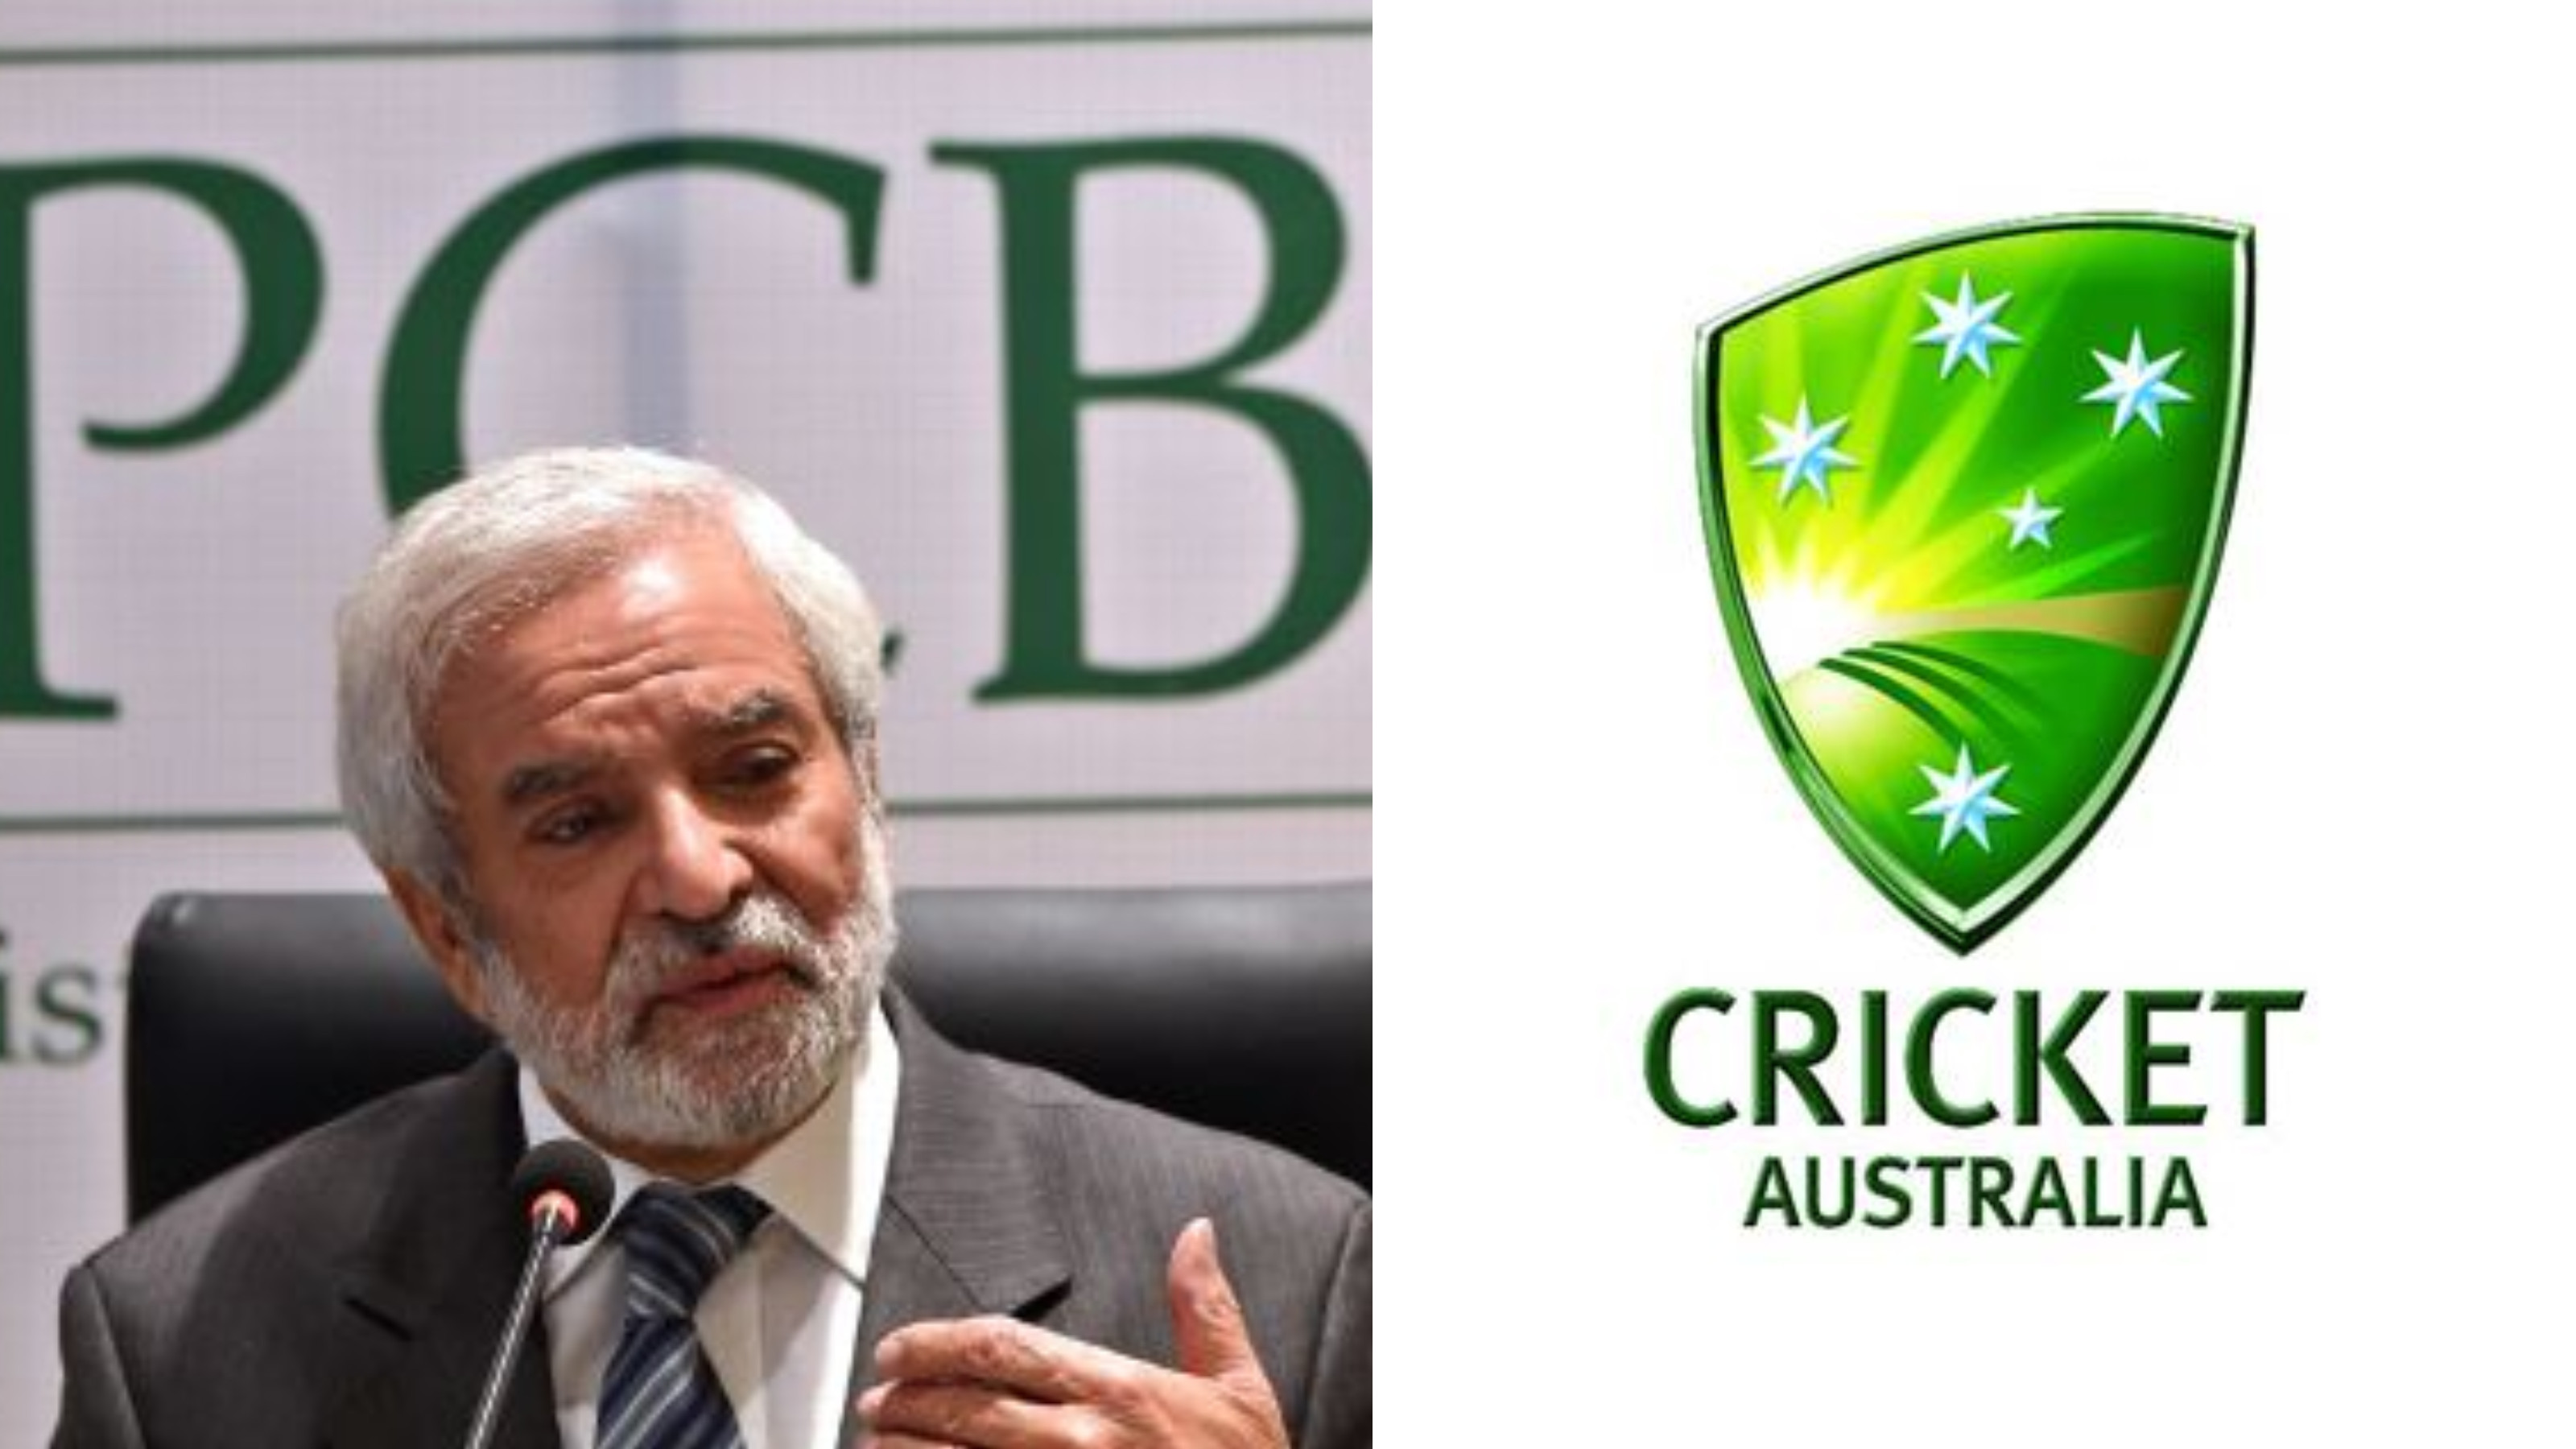 PCB Chief Ehsan Mani urges Australia to return to Pakistan for bilateral series